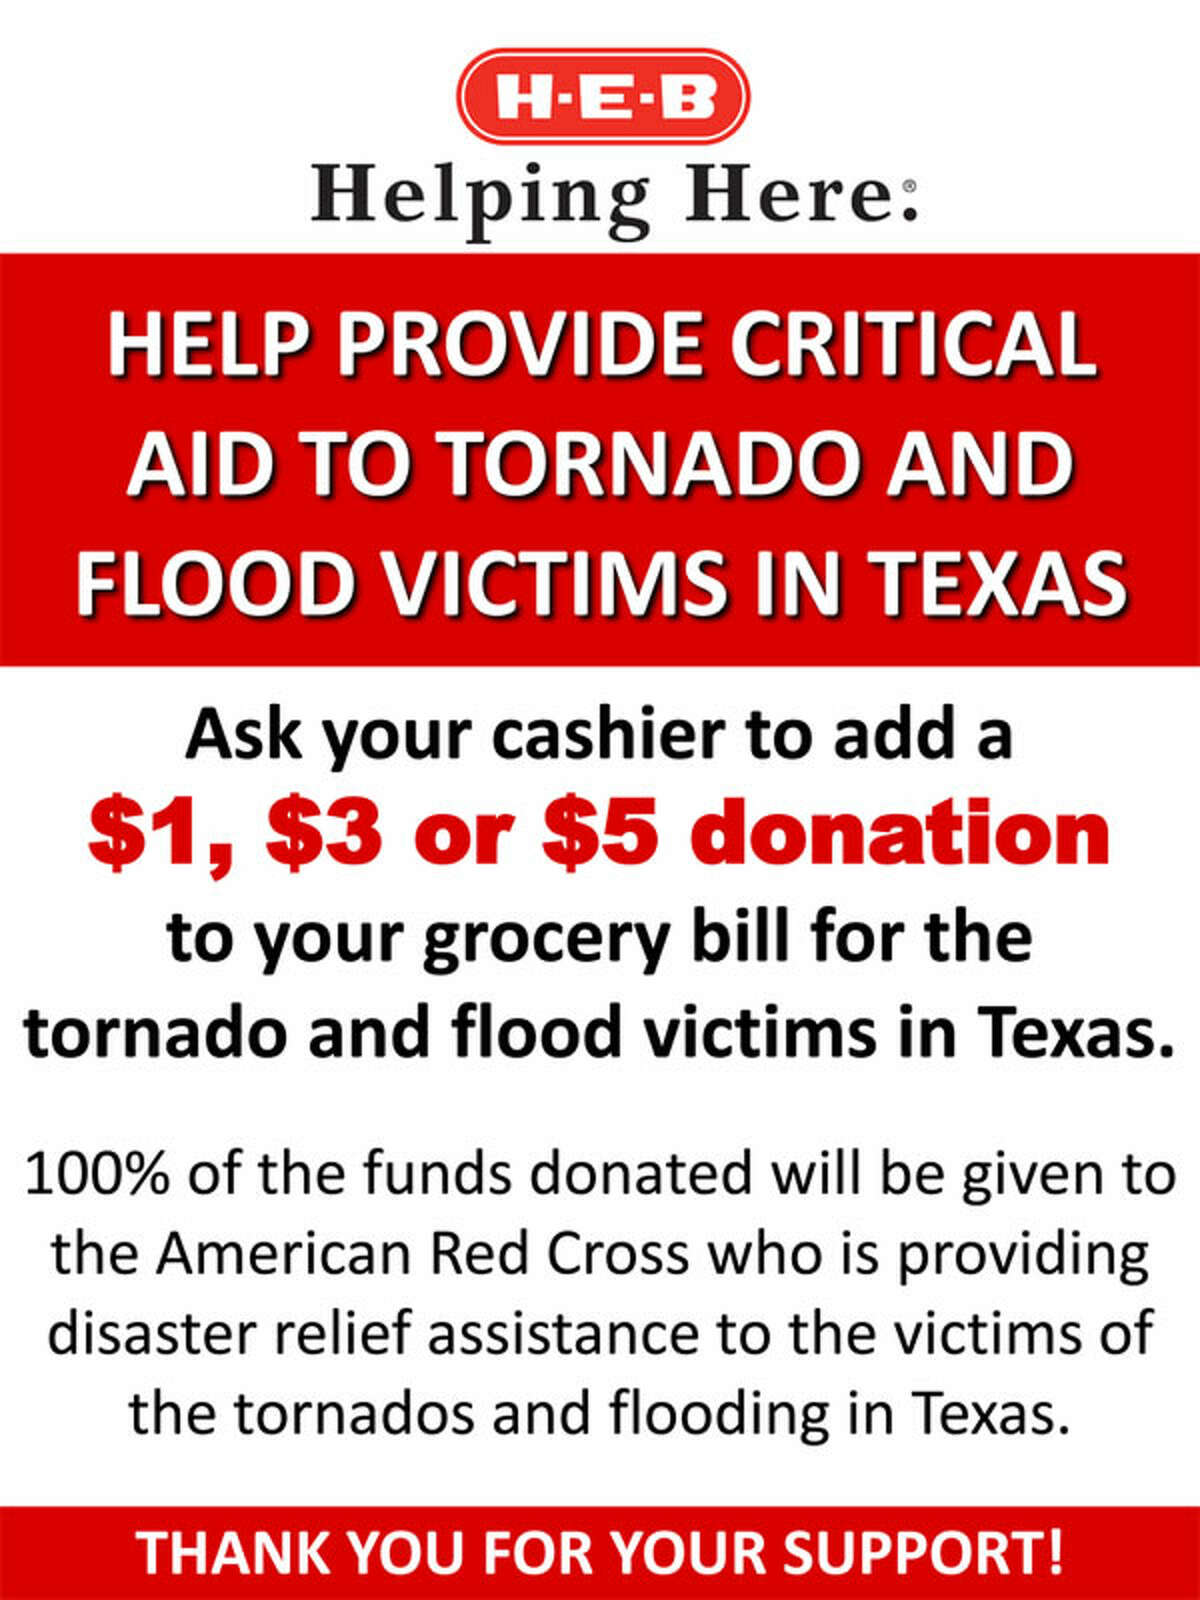 Donate money when you go to H-E-B You can add $1-5 donations to your grocery bill to help benefit the tornado and flood victims in Texas. All proceeds will go to the American Red Cross.